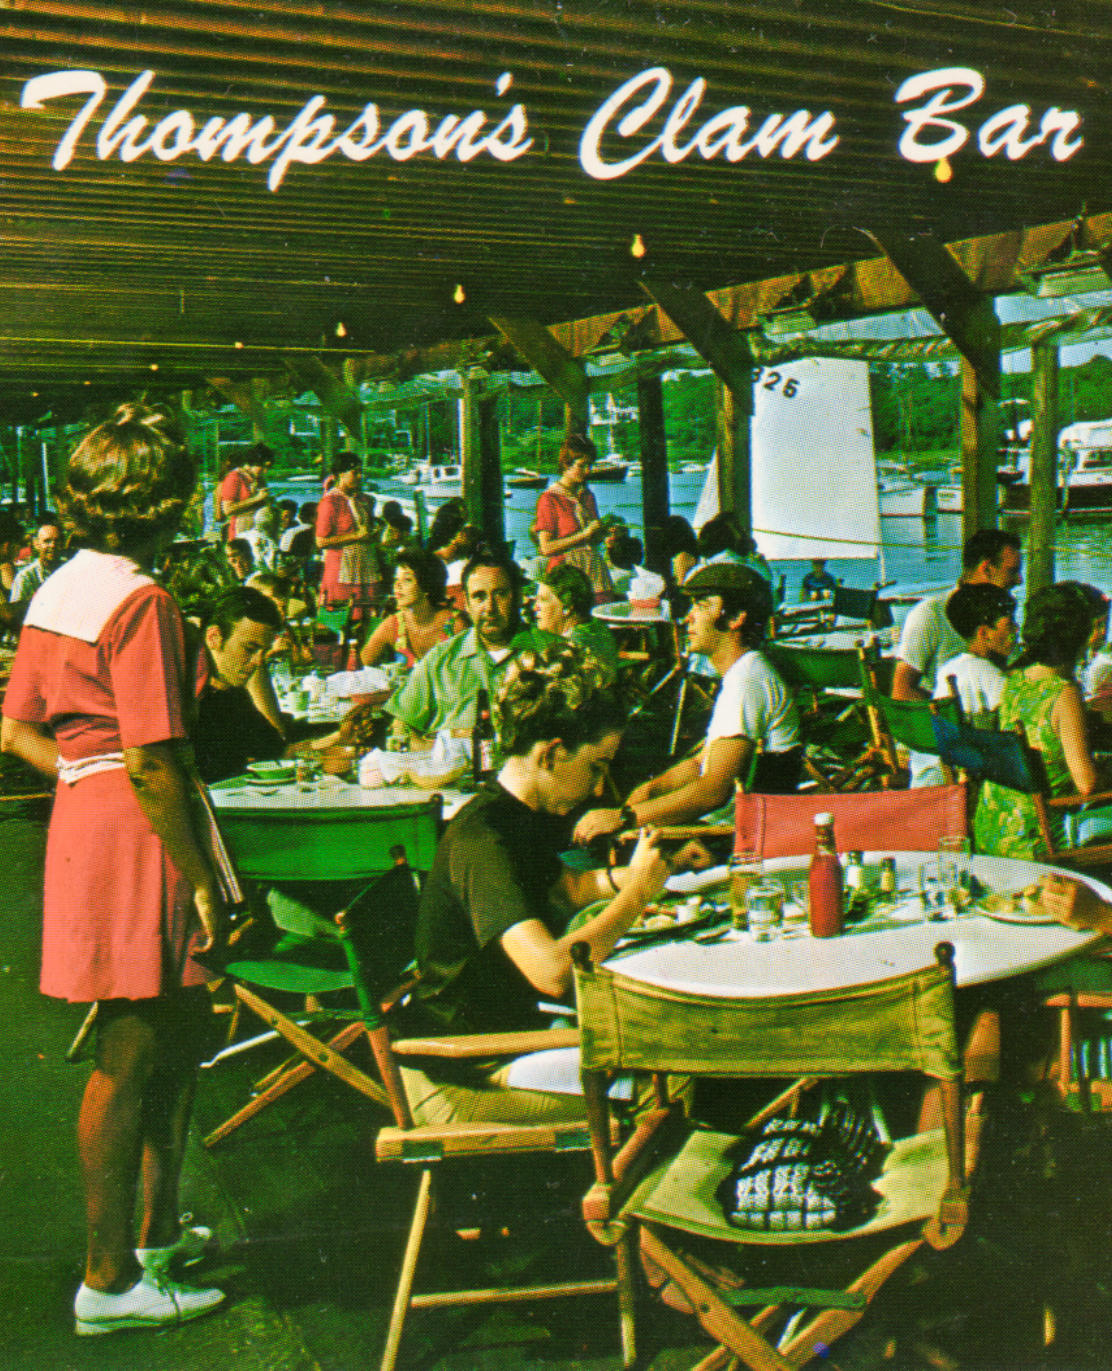 Thompsons Clam Bar Mobile